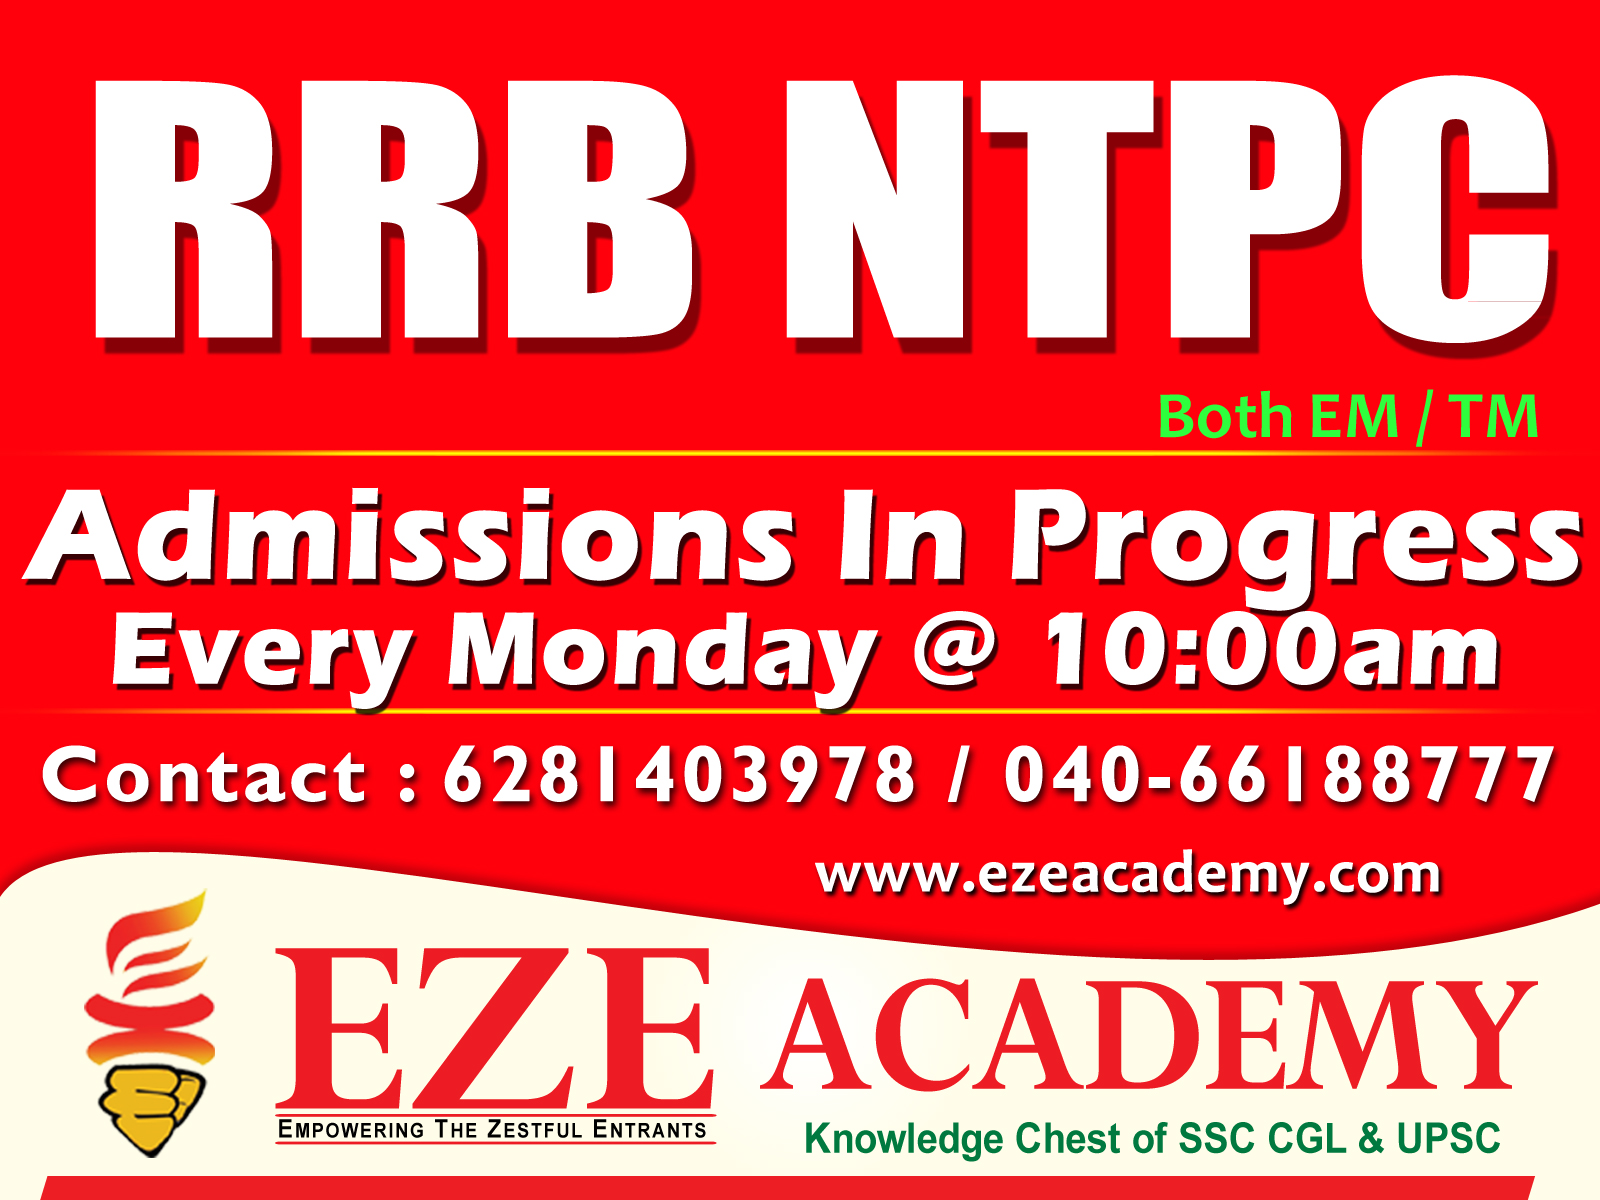 rrb ntpc cbt2 coaching center in hyderabad